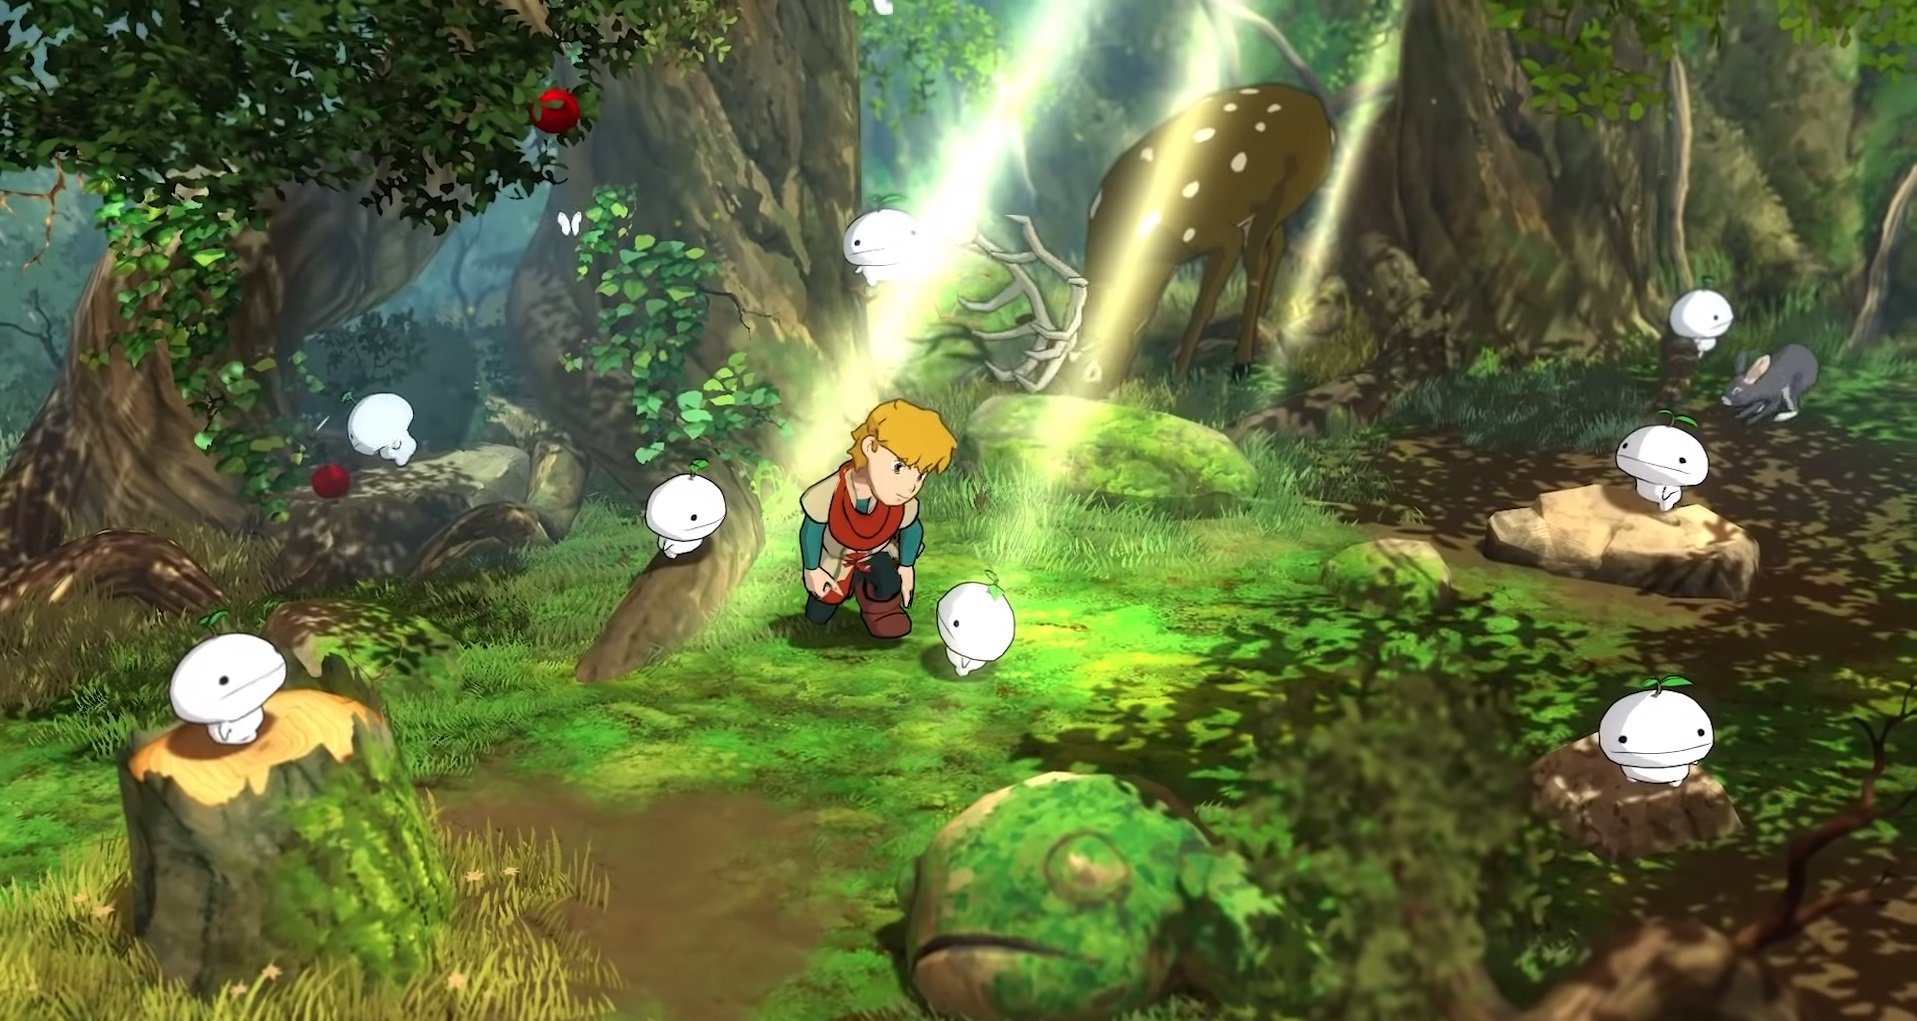 Baldo has a Studio Ghibli vibe mixed with a bit of Legend of Zelda style gameplay.